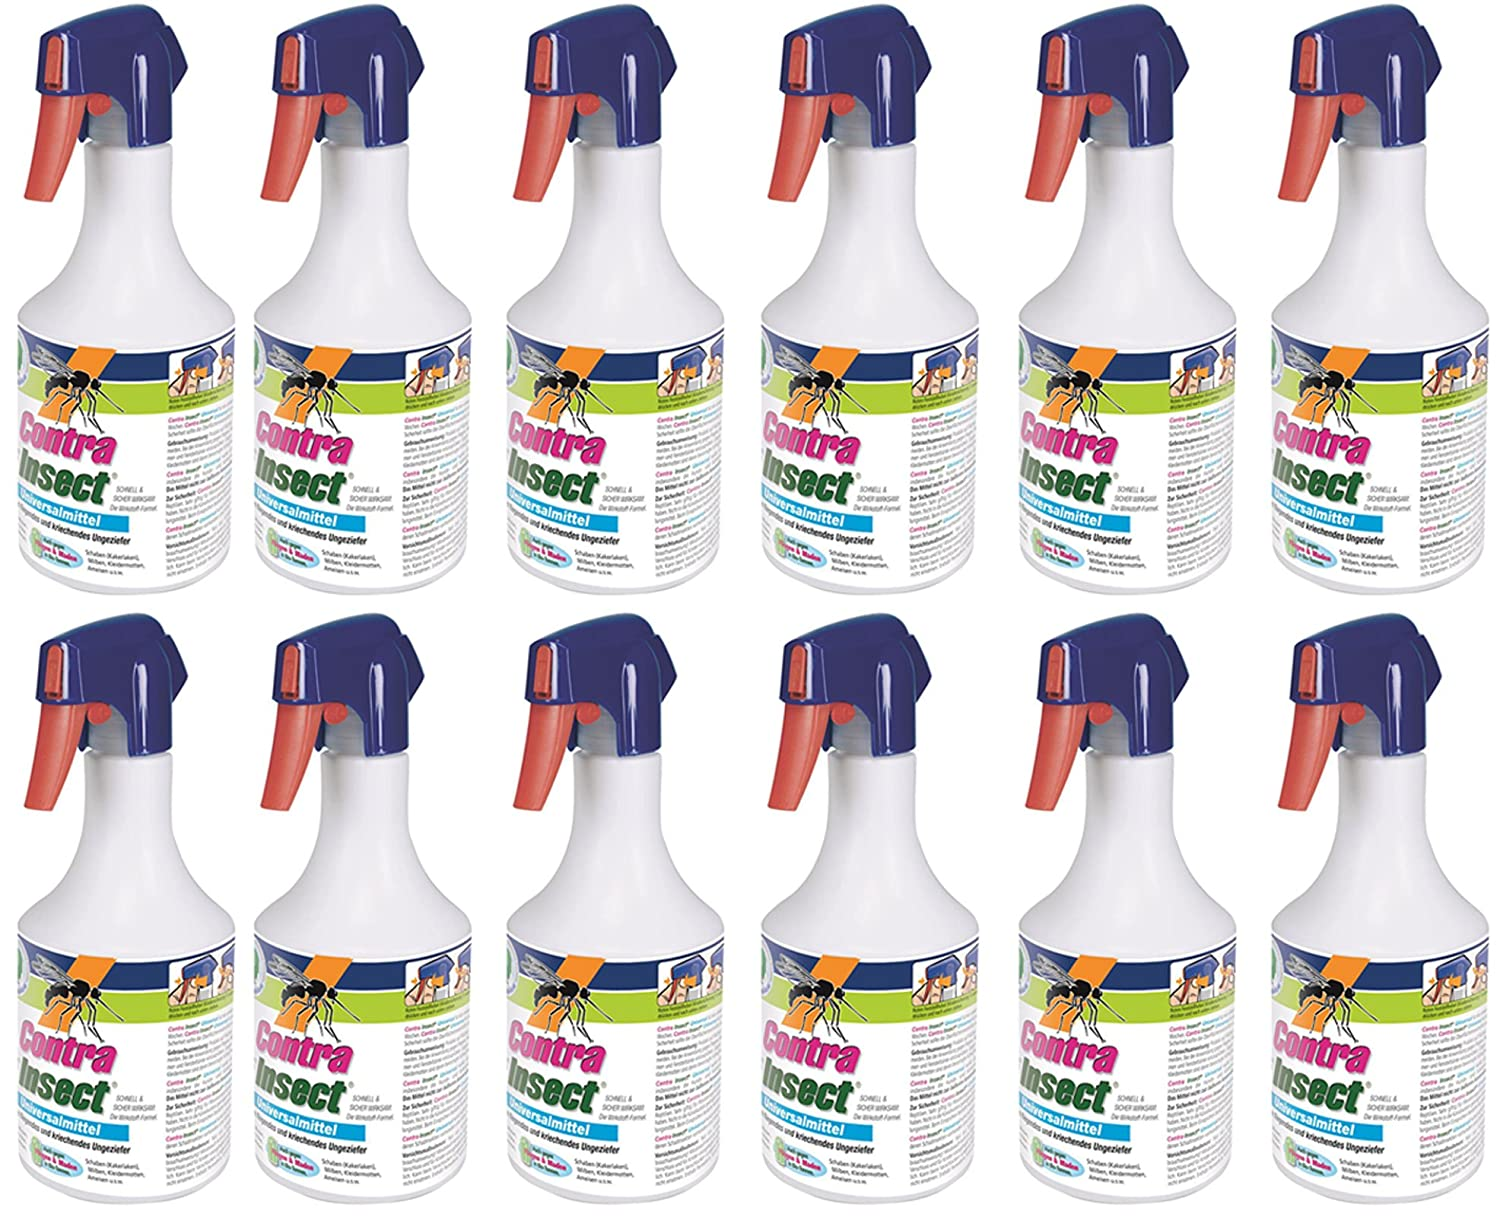 12 x 500 ml Contra Insect Universal Insektenmittel